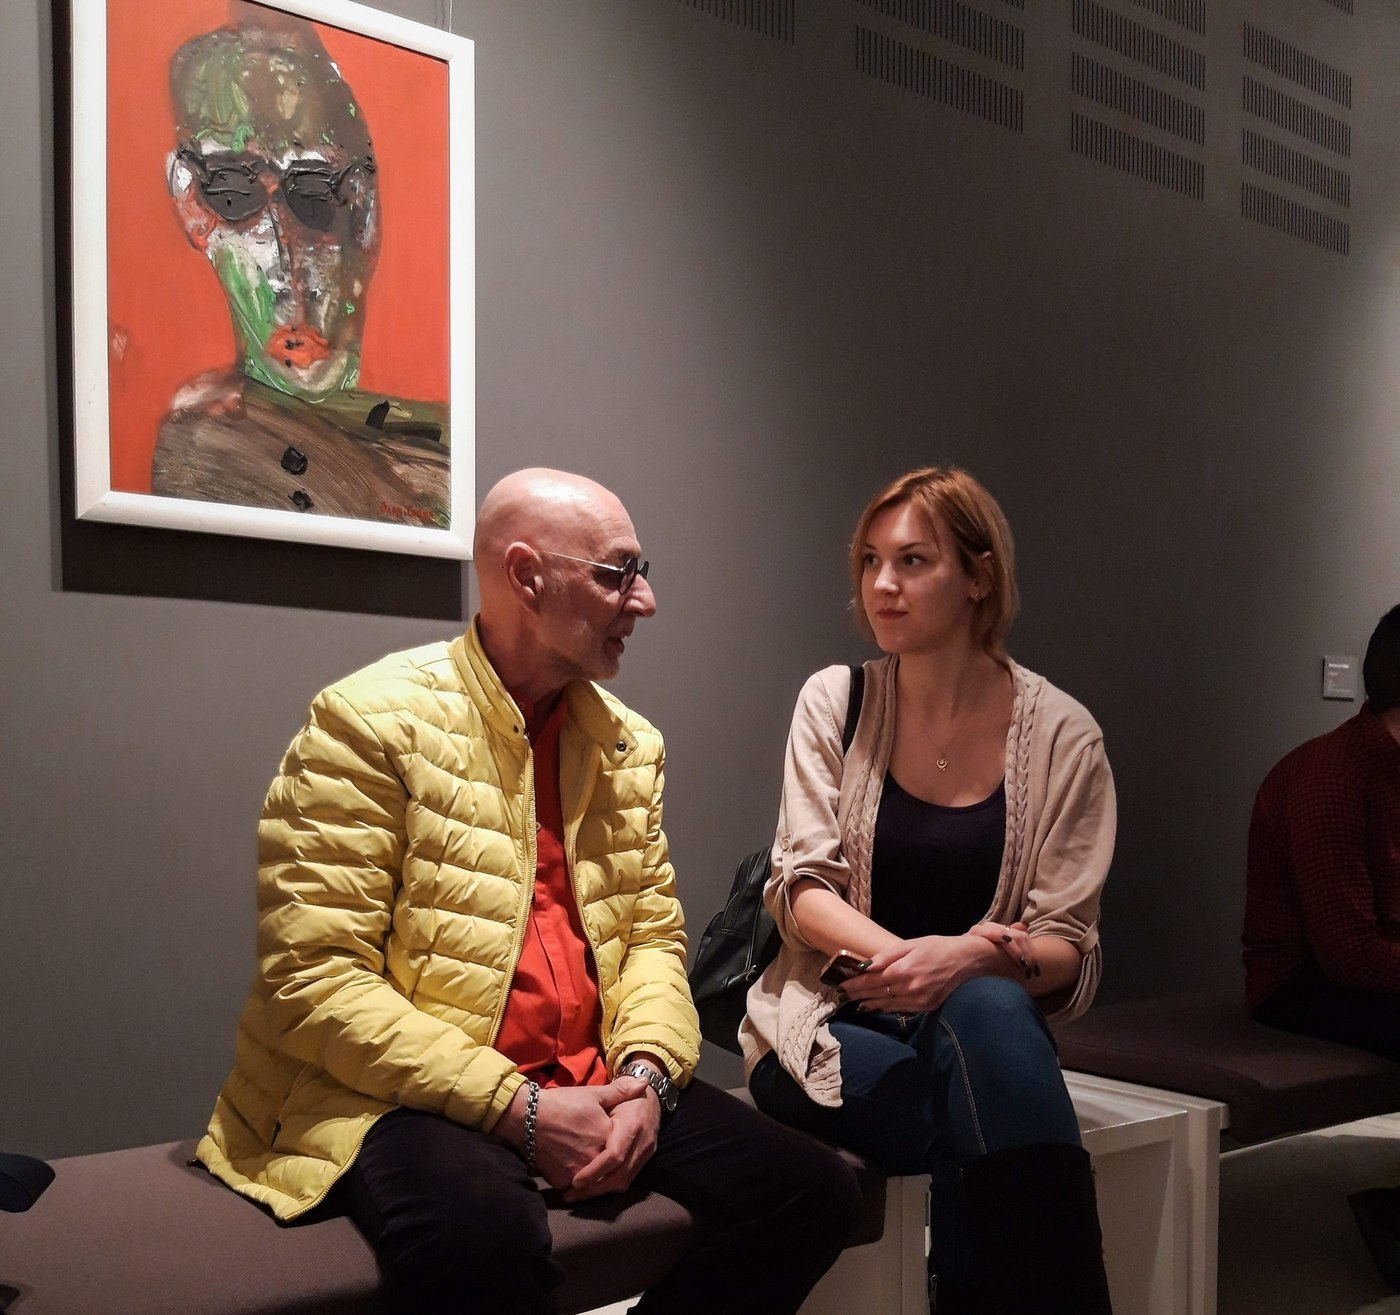 The artist Vladyslav Habda and journalist Kseniia Shokina